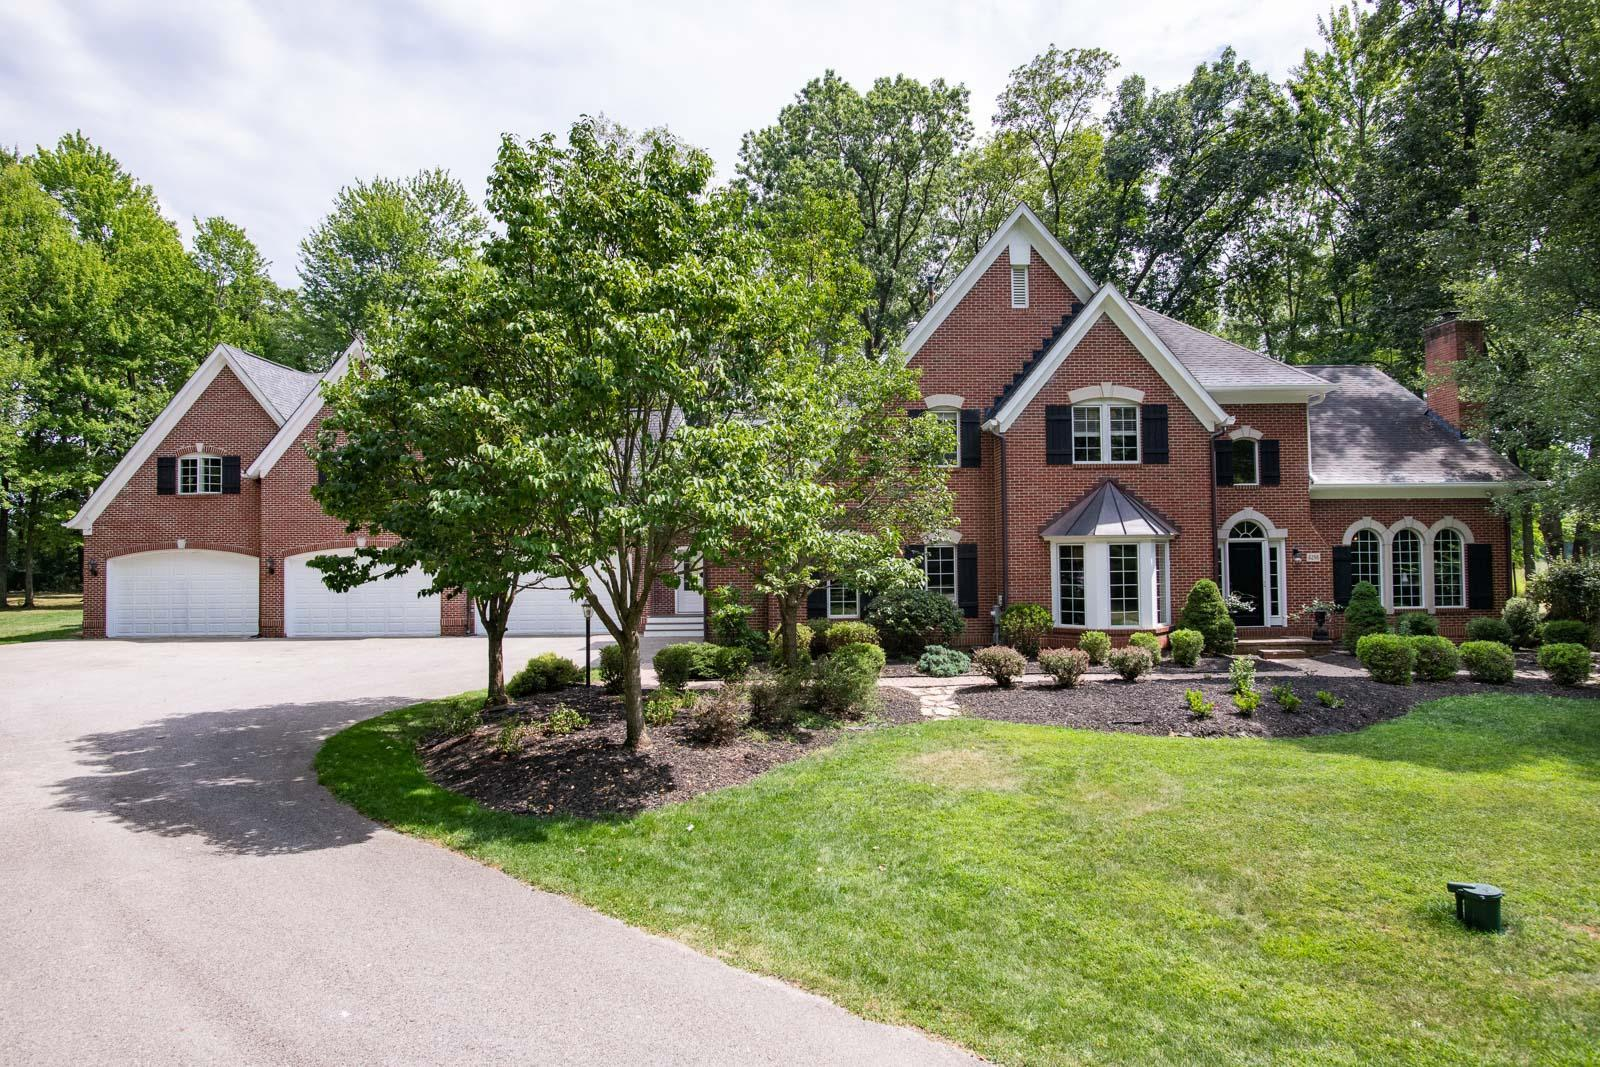 Photo of 8298 Harlem Road, Westerville, OH 43081